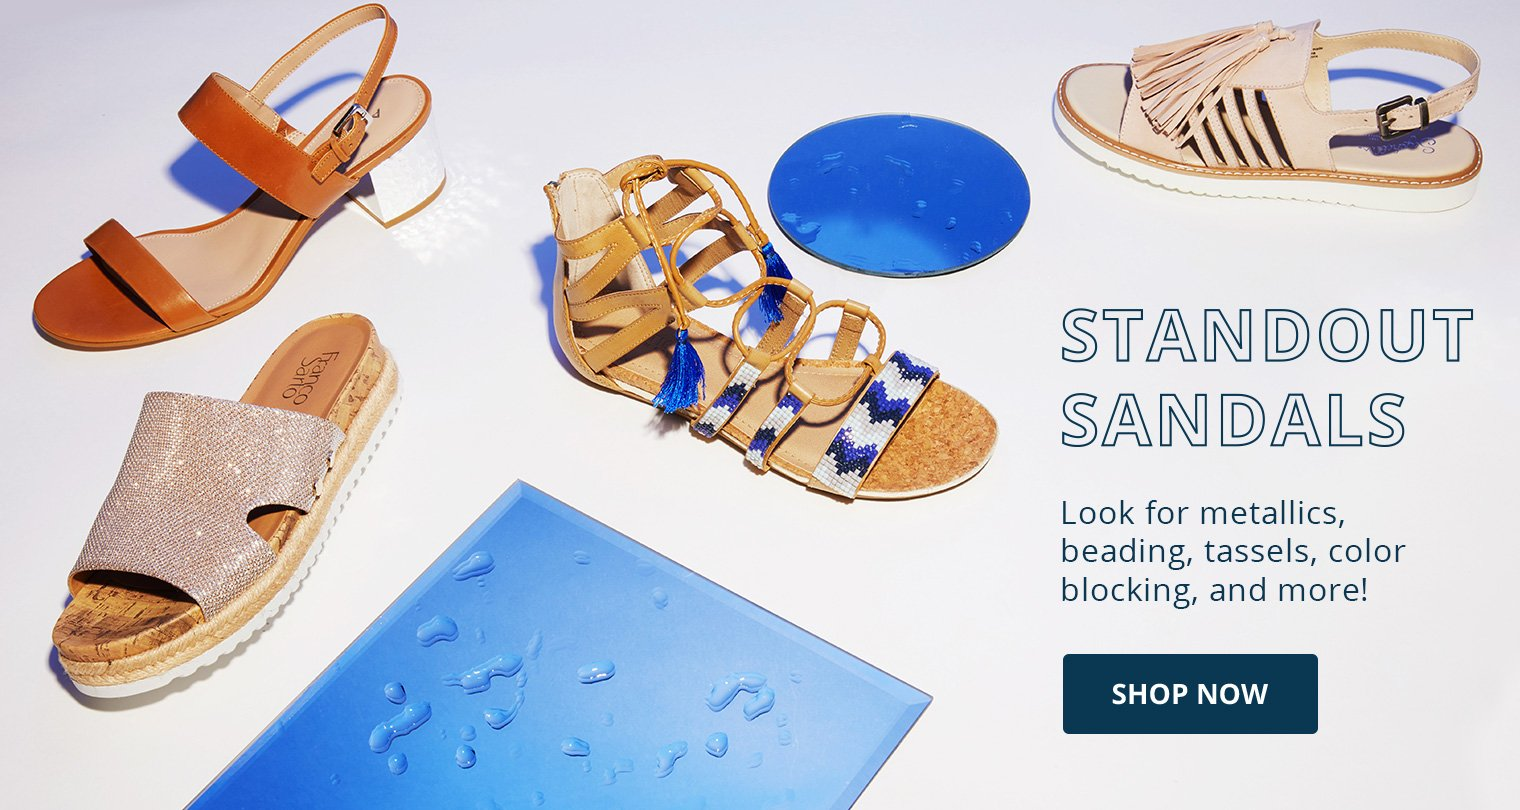 Standout Sandals. Look for metallics, beading, tassels, color blocking, and more! Shop Now.